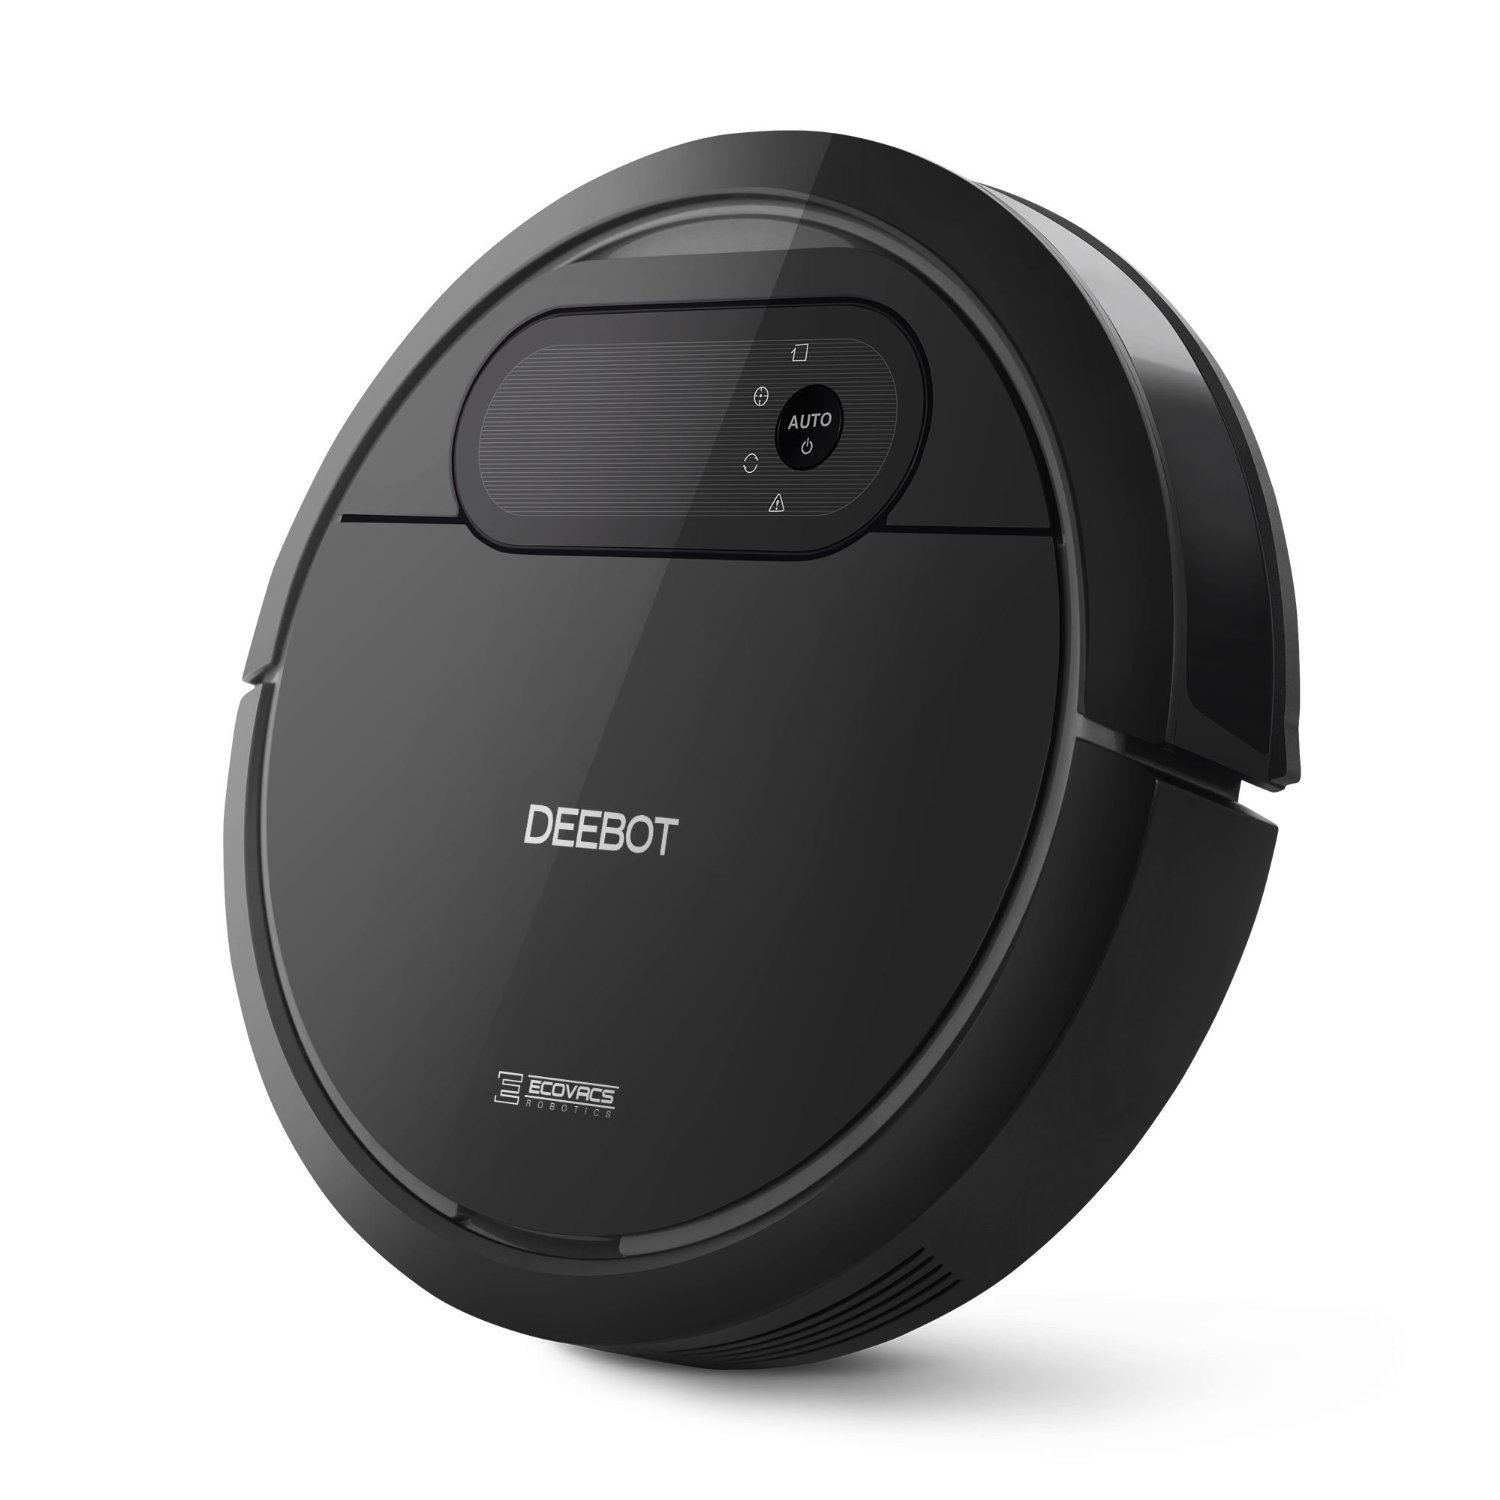 ECOVACS Deebot N78 Robot Vacuum Cleaner with Direct Suction, Sensor Navigation for Pet Hair, Fur, Allergens, Thin Carpet, Hardwood and Tile Floors by ECOVACS